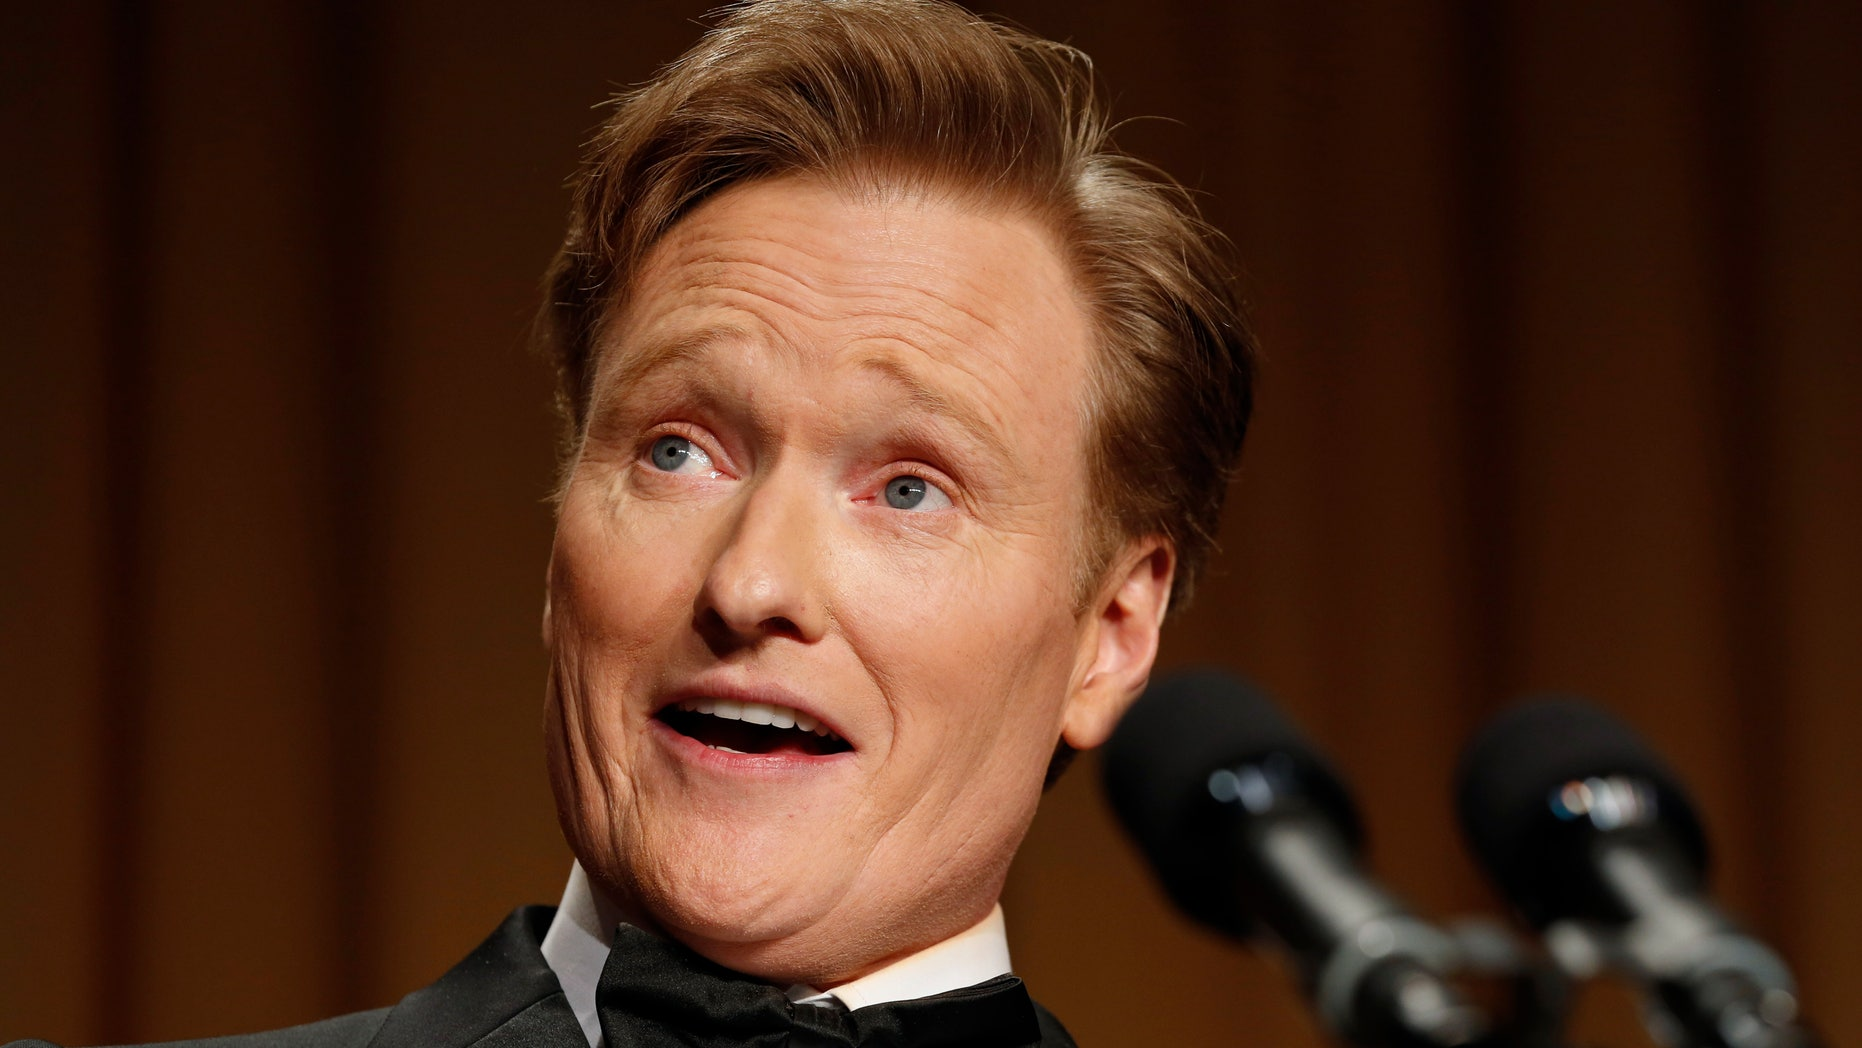 Comedian Conan O'Brien speaks at the White House Correspondents Association Dinner in Washington April 27, 2013.